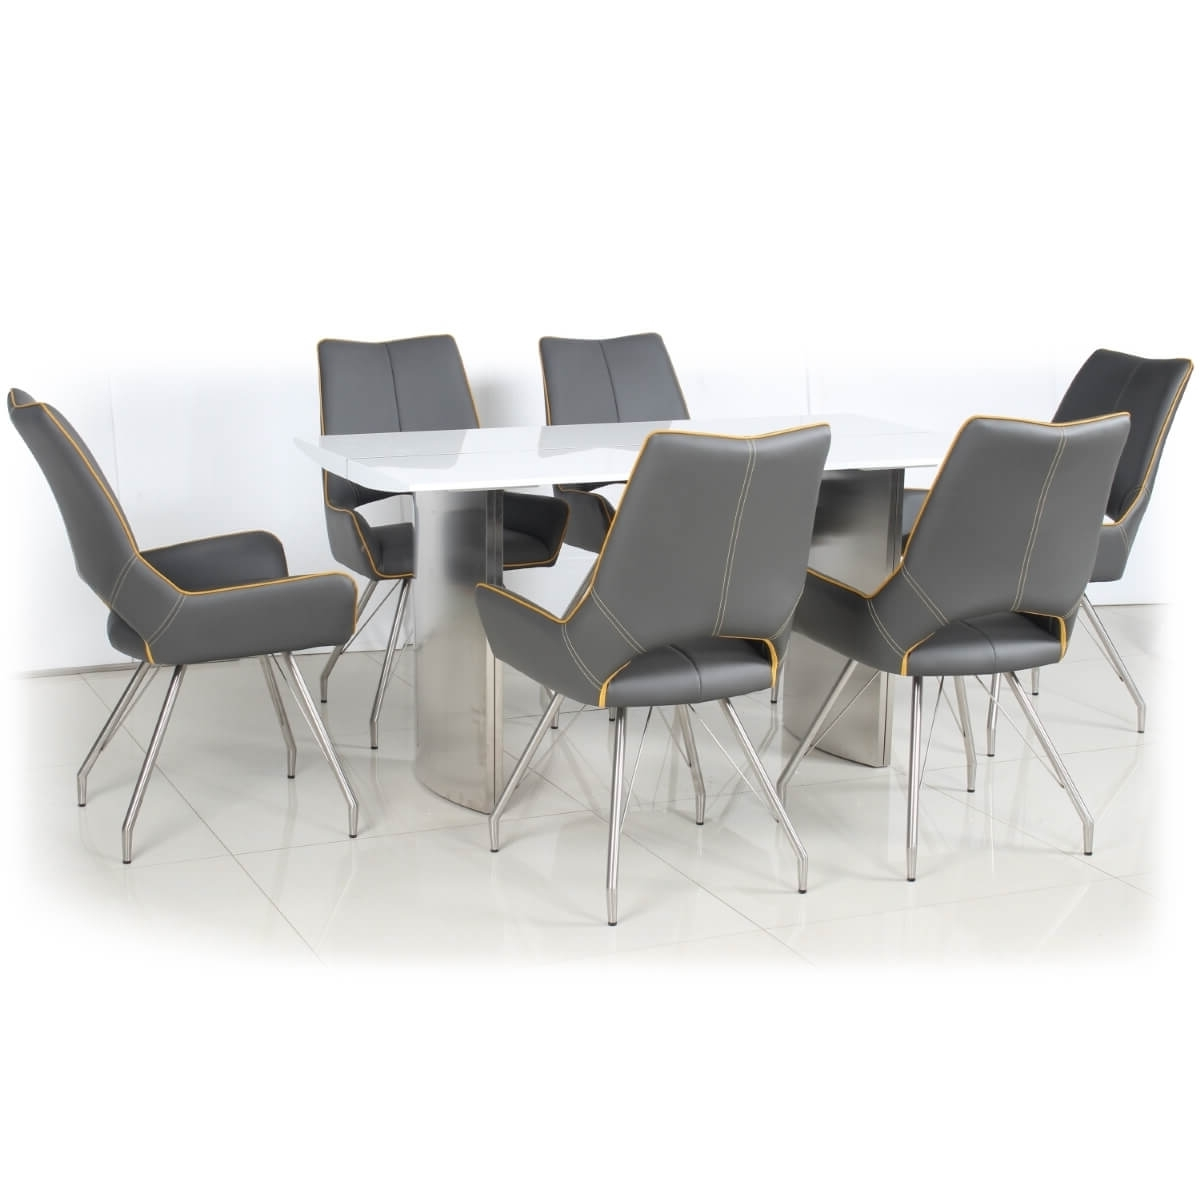 High Gloss White Dining Chairs Inside Current Dining Set – White High Gloss Dining Table And 6 Grey Dining Chairs (View 15 of 25)